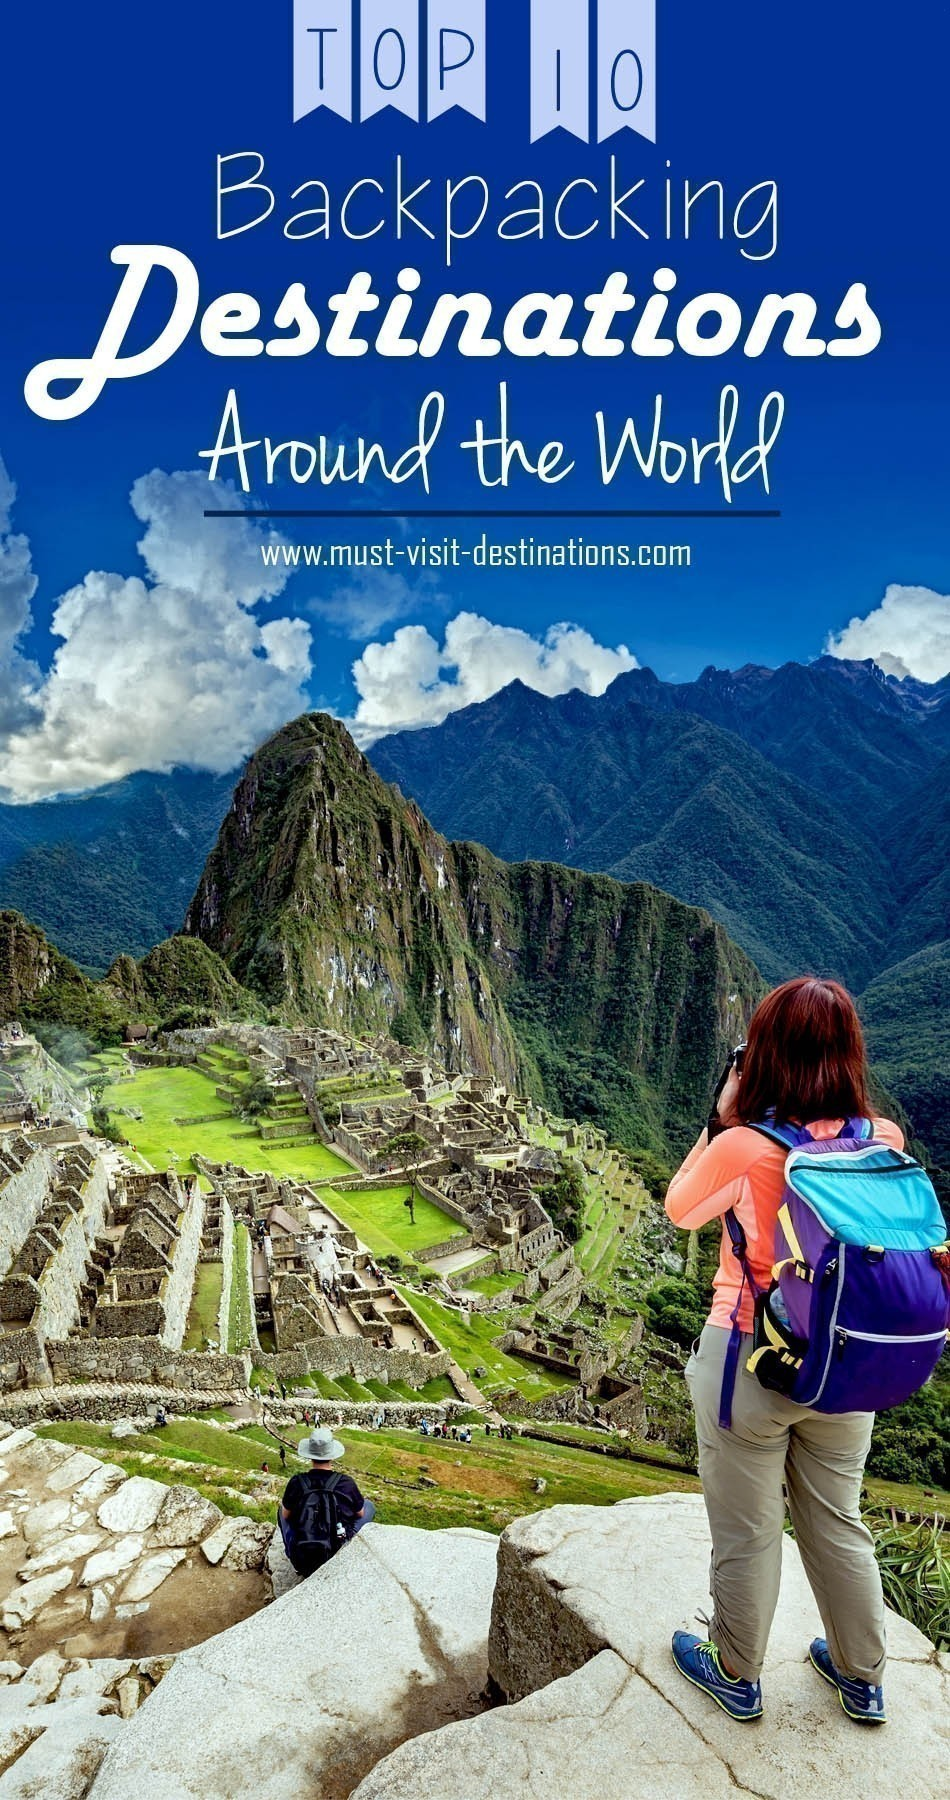 Top 10 Backpacking Destinations Around the World #travel